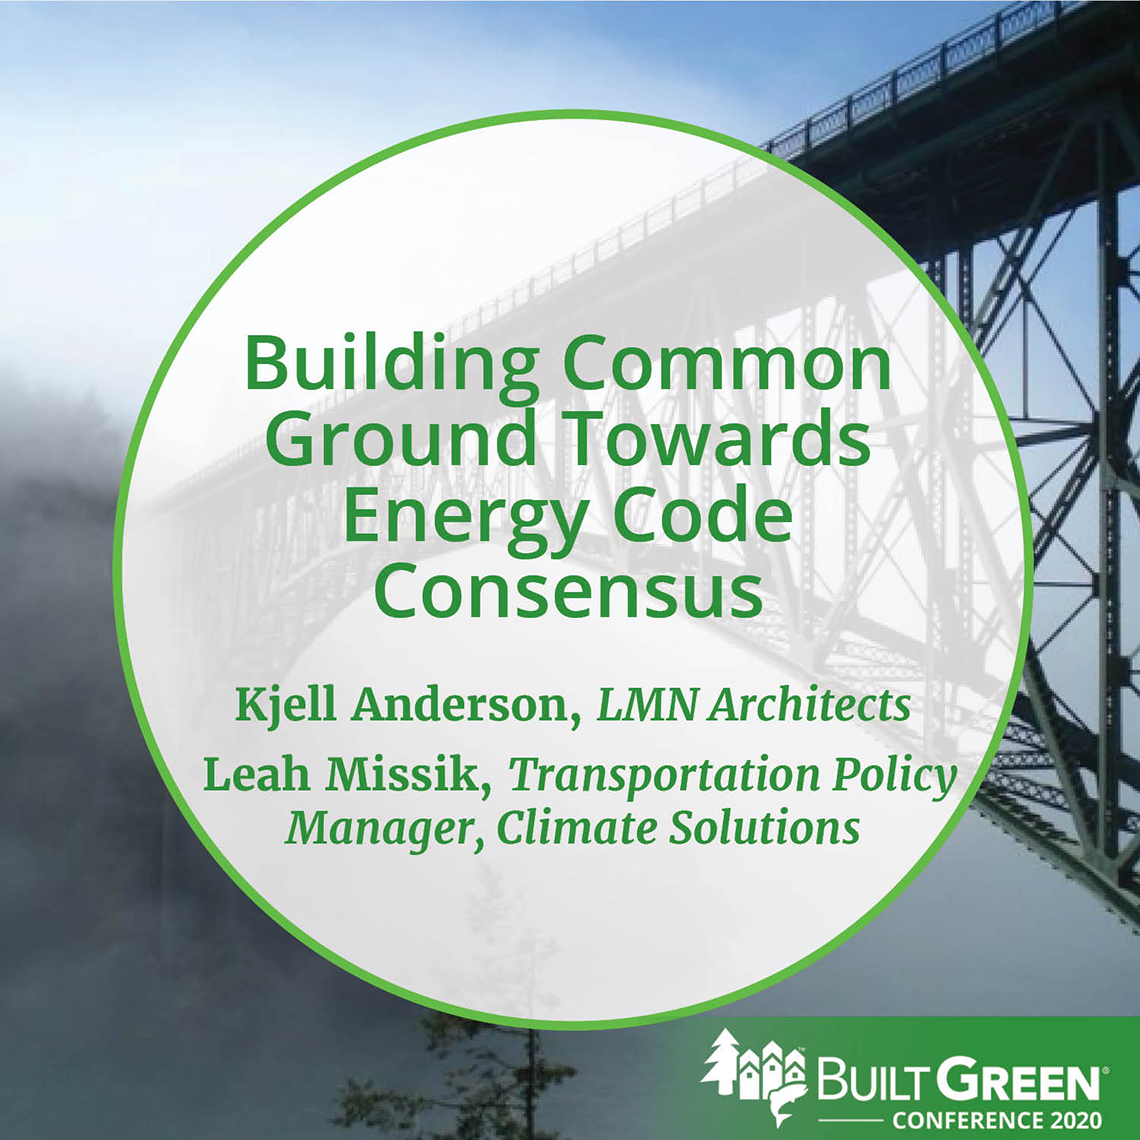 Built Green Conference Session: Building Common Ground Towards Energy Code Consensus, featuring Kjell Anderson, LMN Architects; Leah Missik, transportation policy manager, Climate Solutions